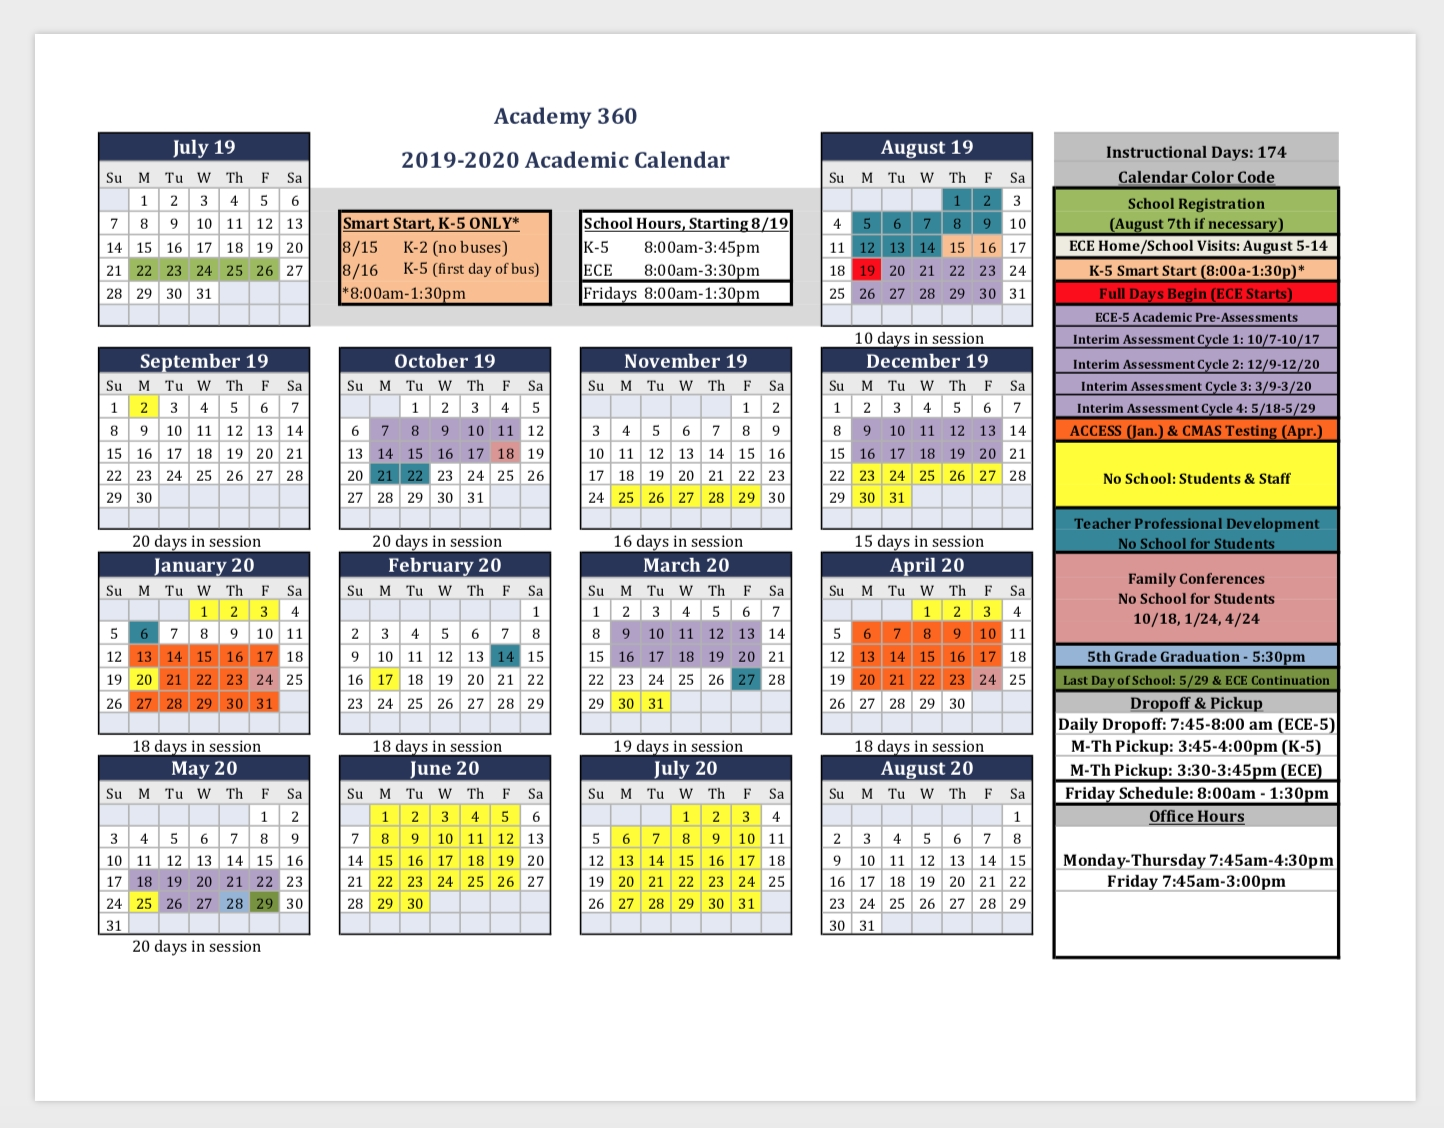 2019-2020 Academic Calendar & Back To School Registration - Academy 360 intended for 2020 Special Days